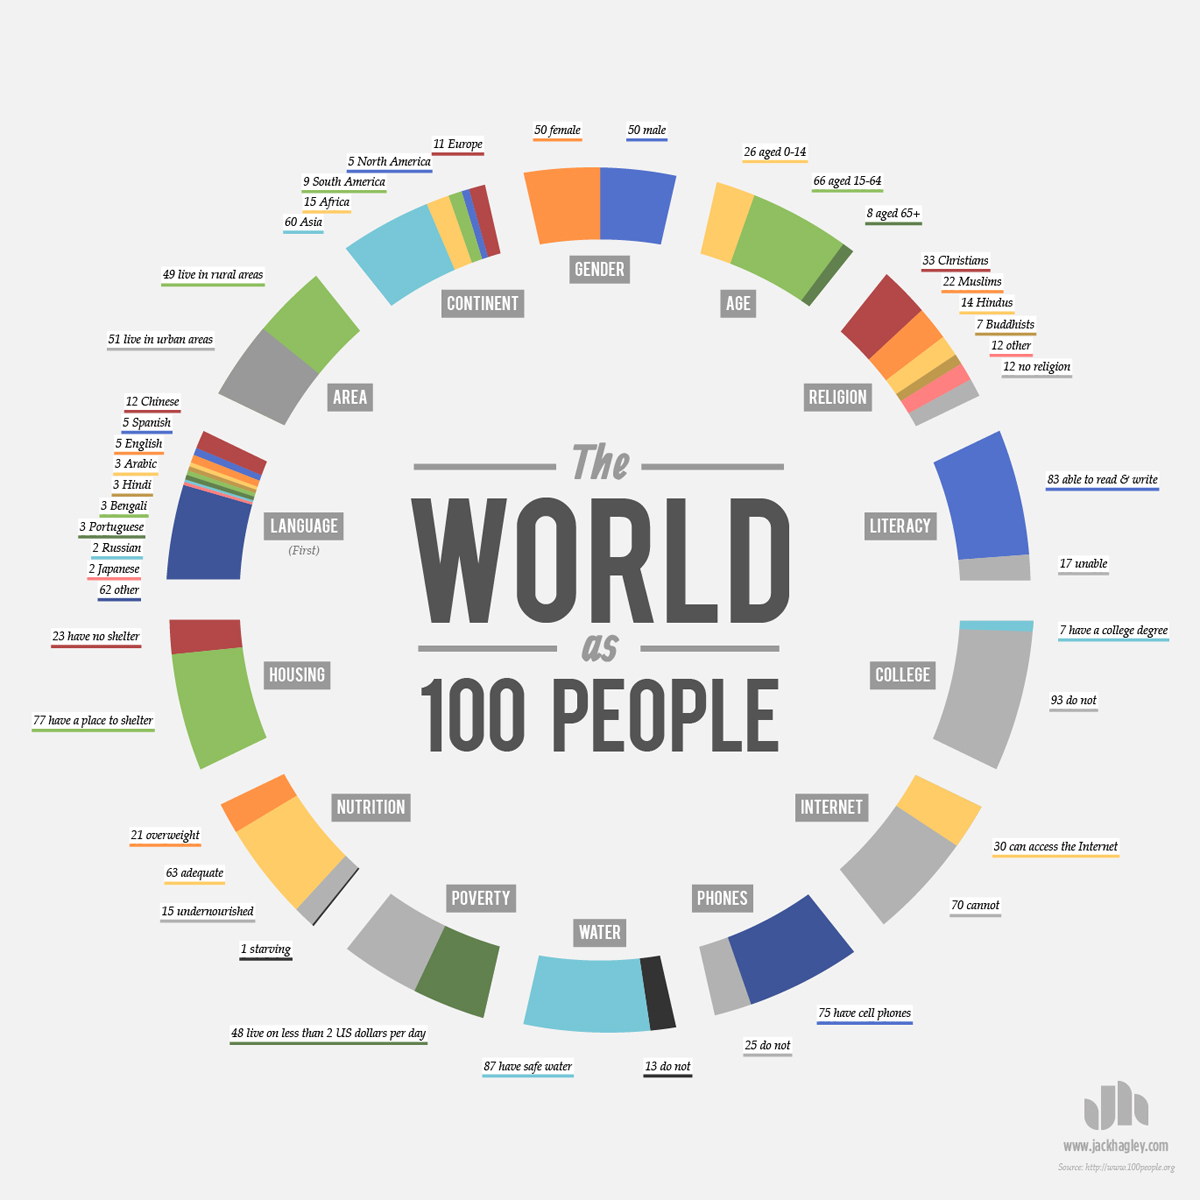 Source.  London-based designer  Jack Hagley  has created an infographic based of what the world would like if it were represented by 100 people. You can find the original source of the data used  here .